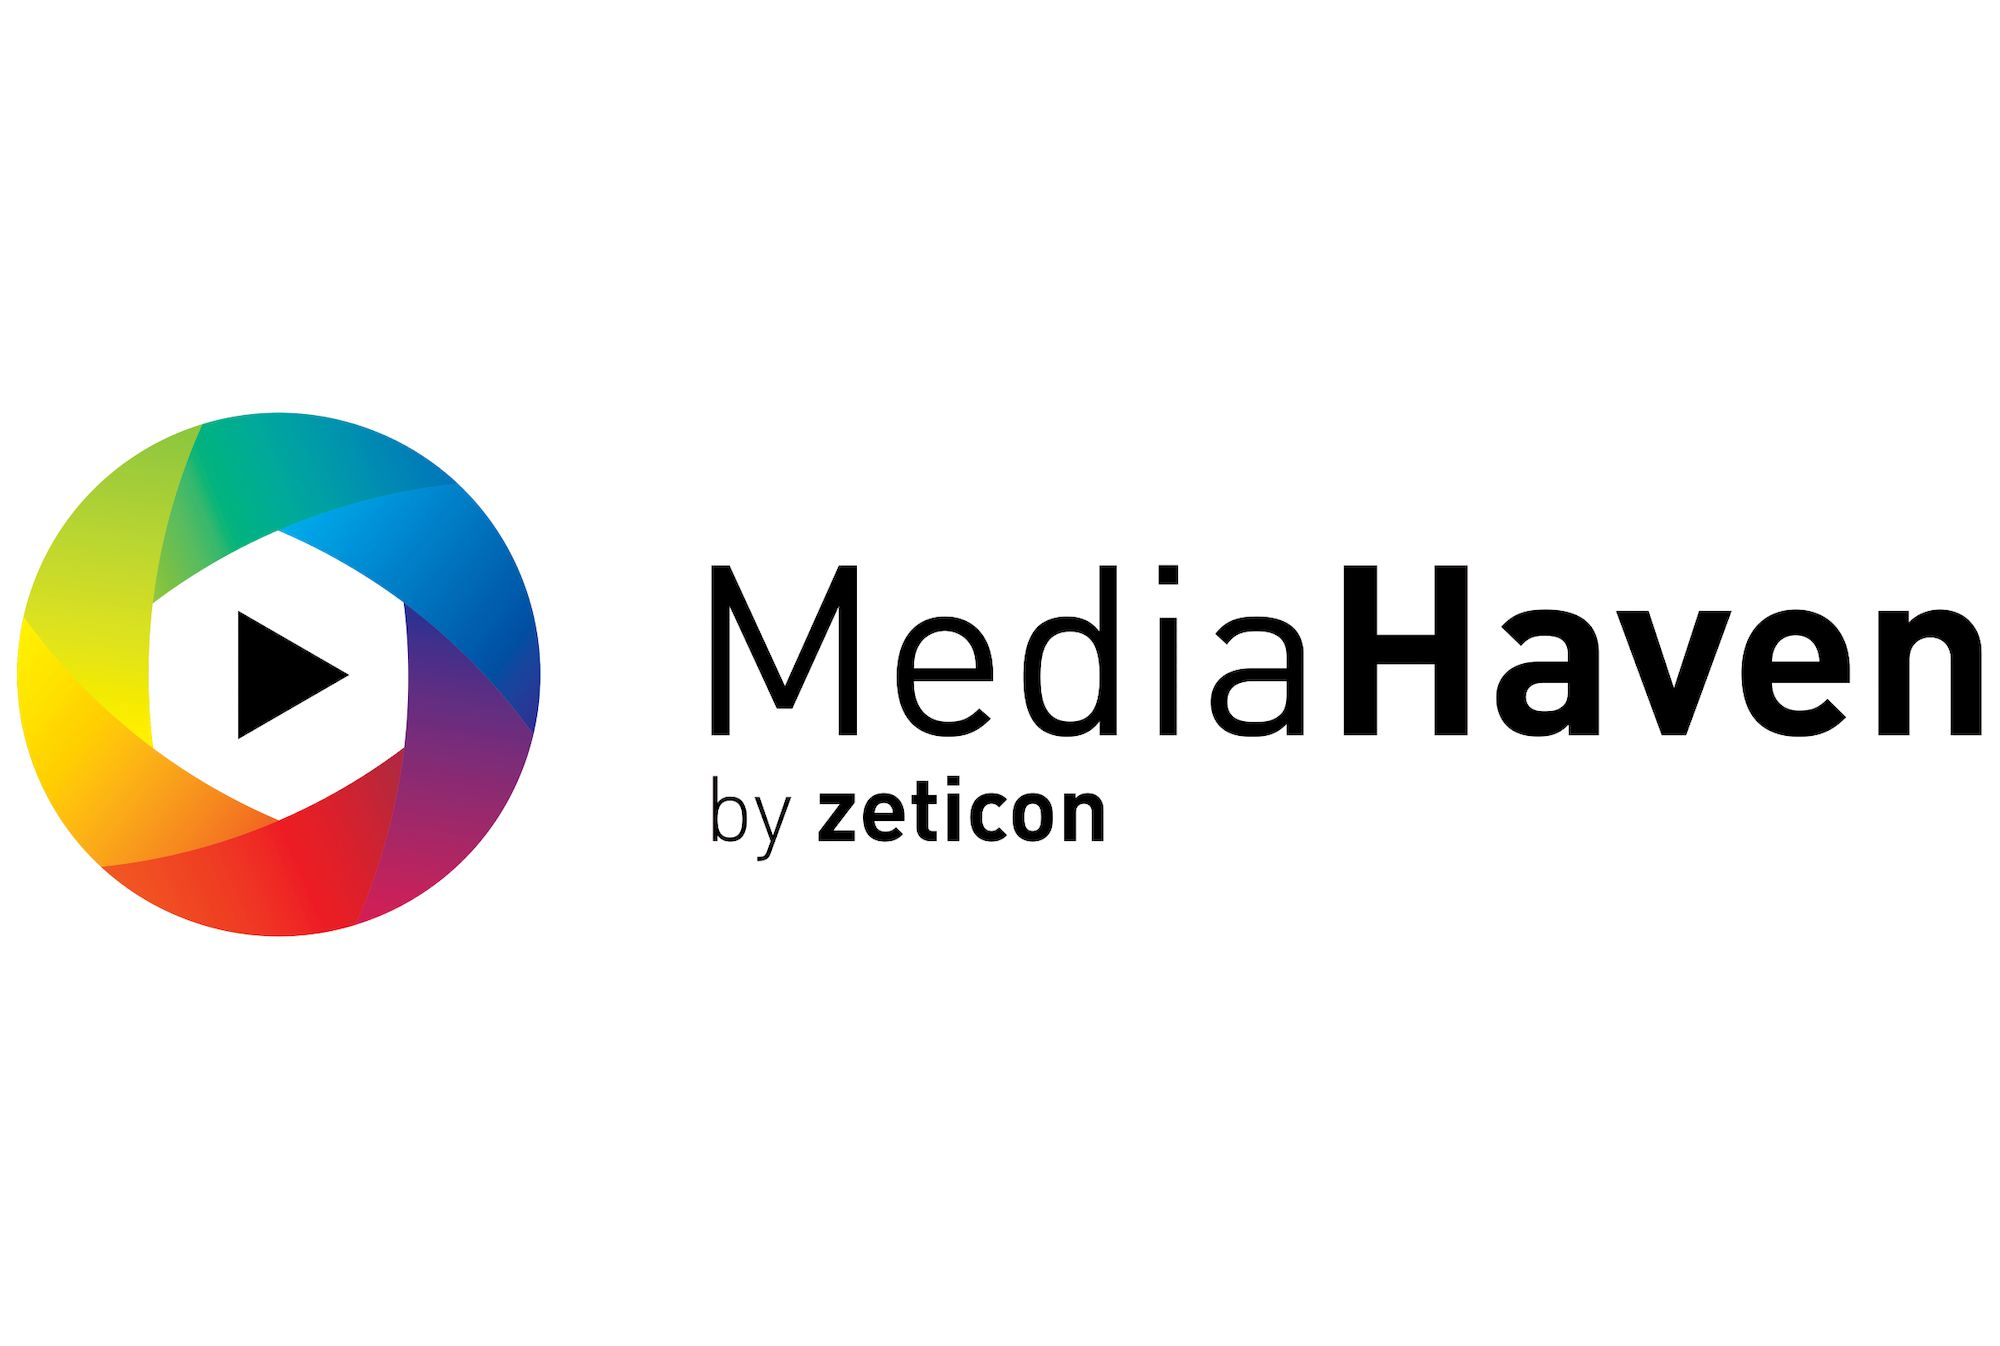 MediaHaven_byZeticon.png